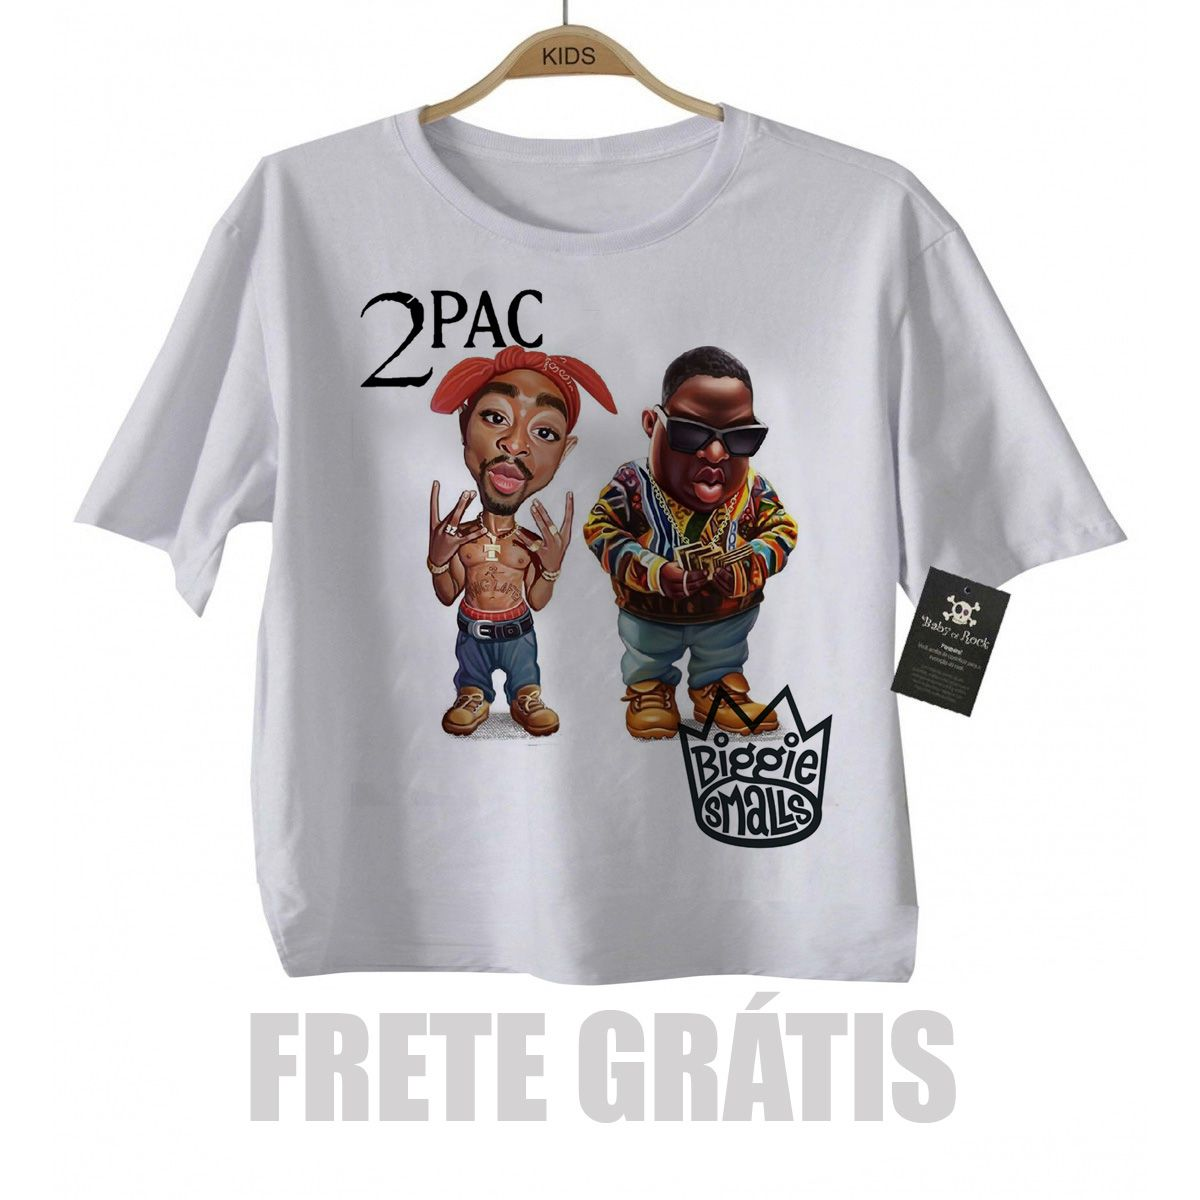 Camiseta Infantil  Rap / Hip hop   2 pac e Biggie Smalls - White  - Baby Monster S/A